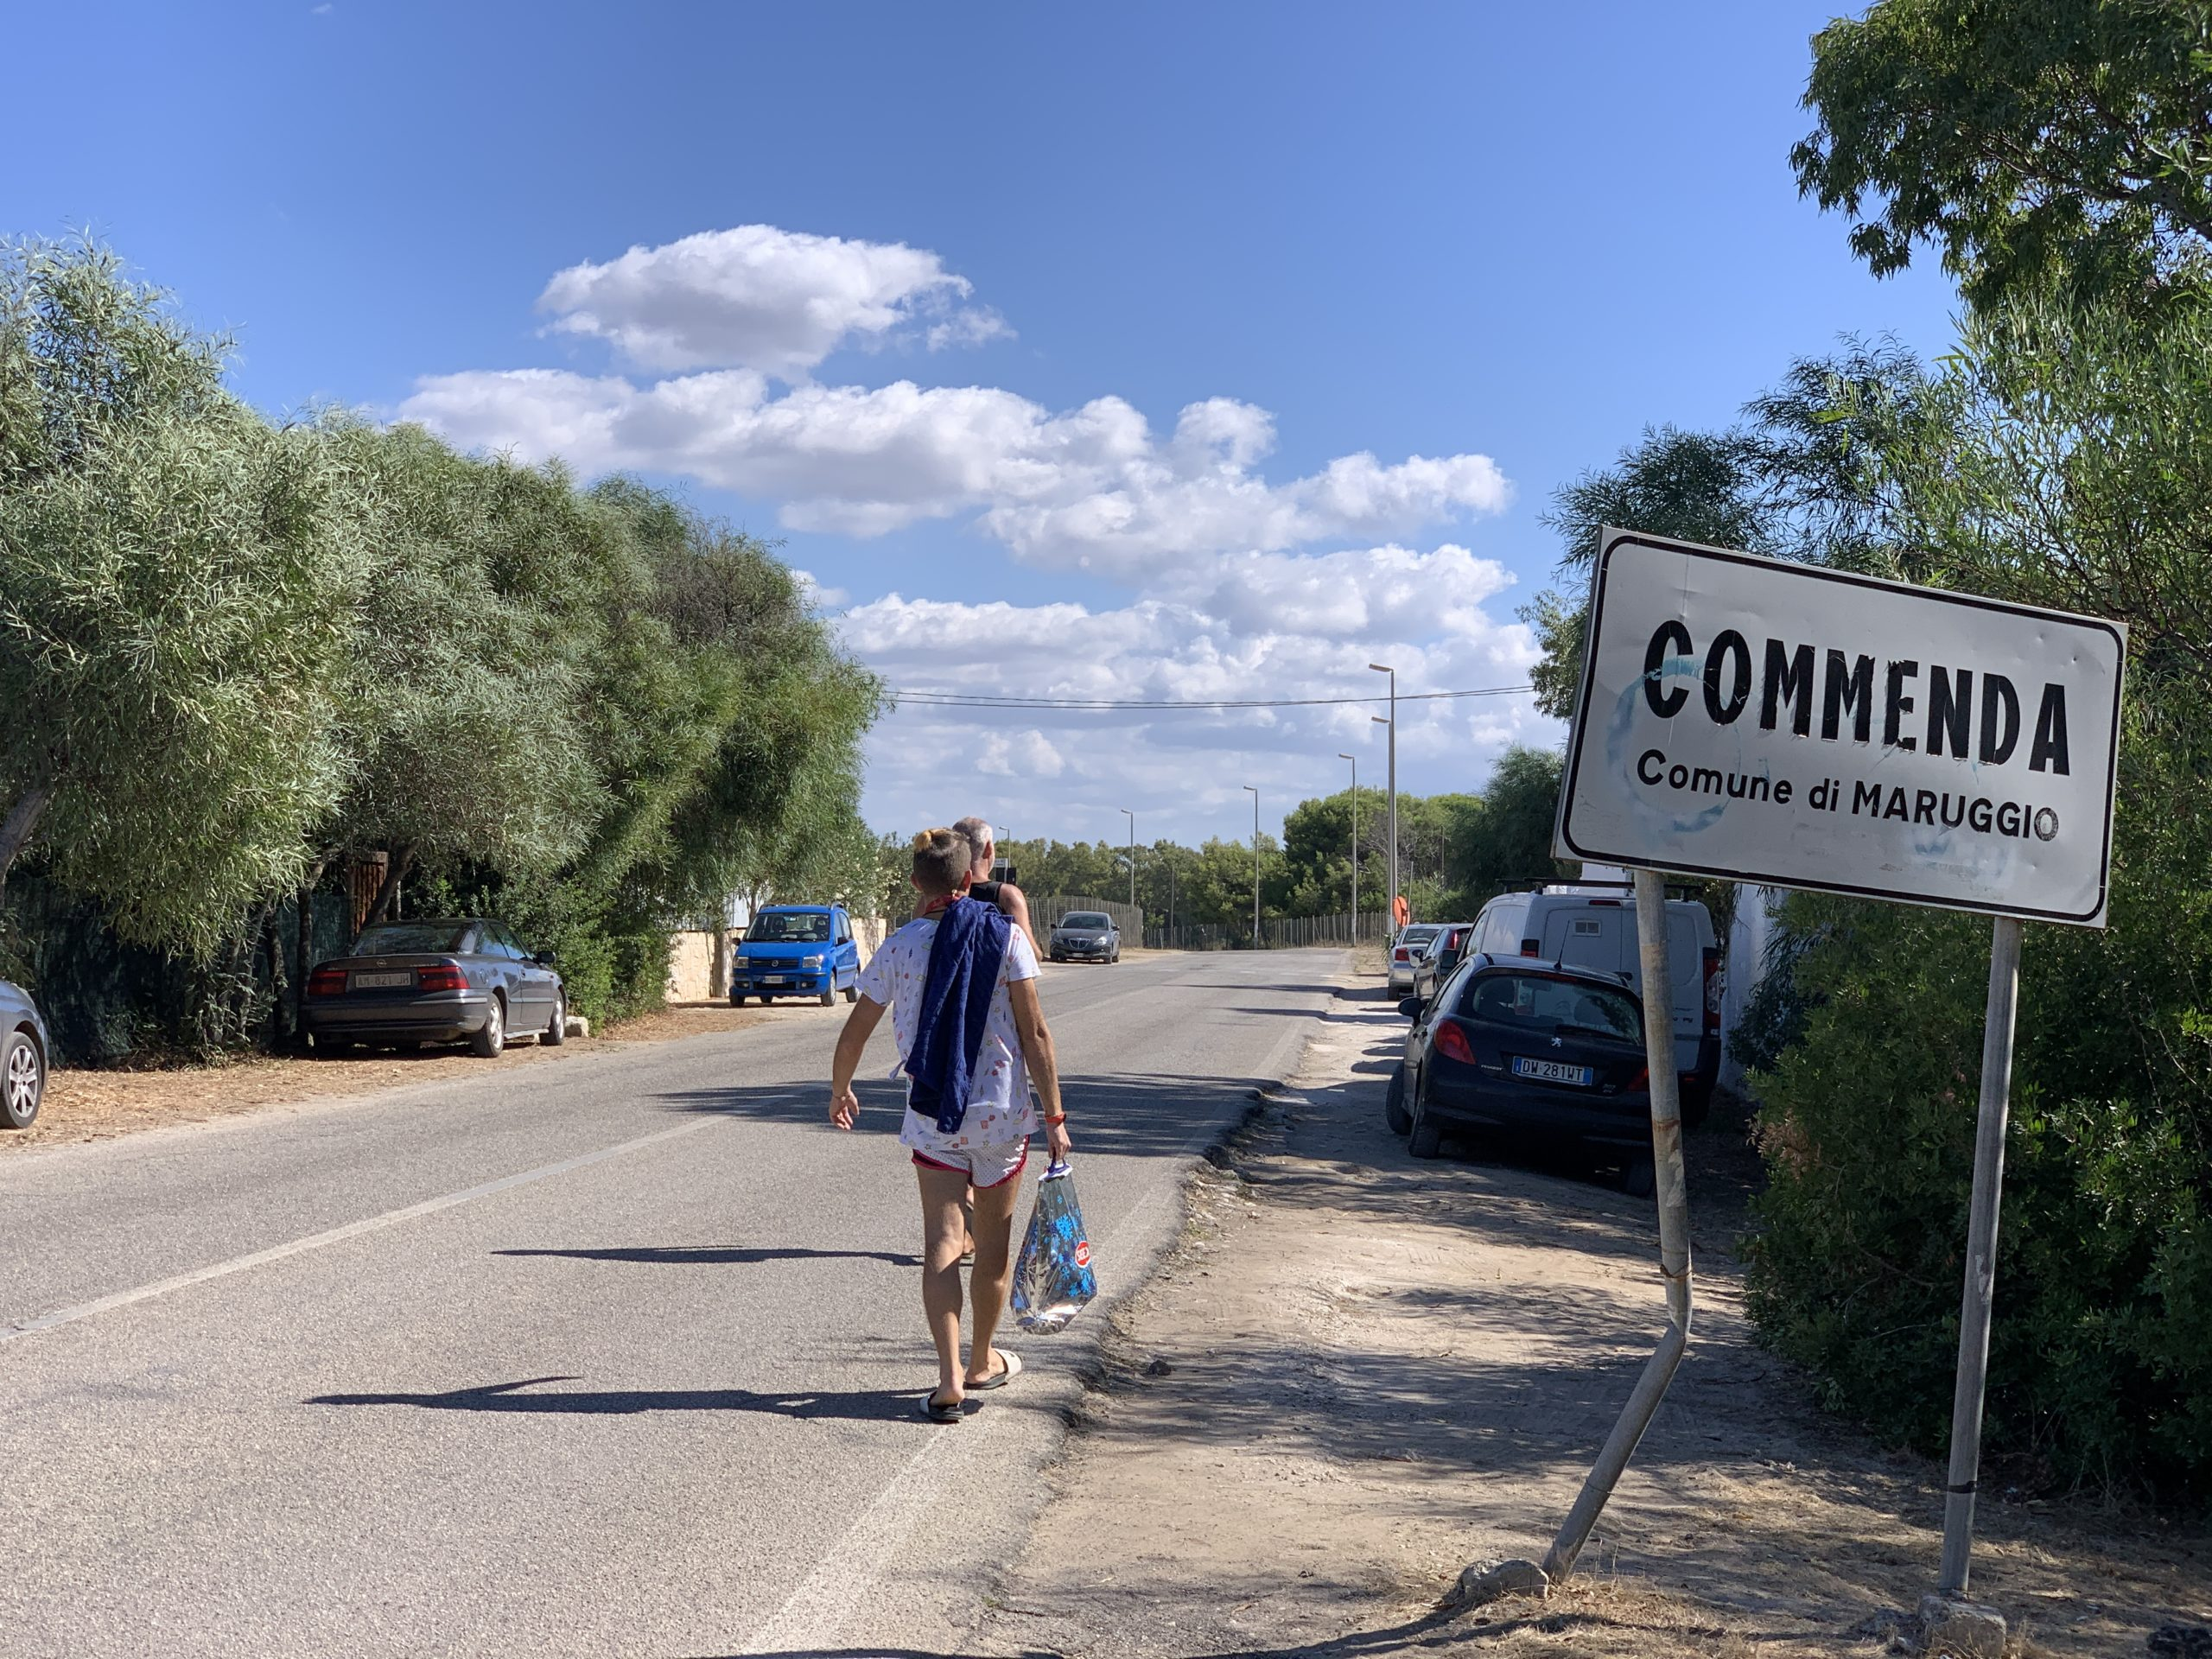 How to get to Puglia's top and best bay beach - d'Ayala beach, Commenda beach at Campomarino di Maruggio